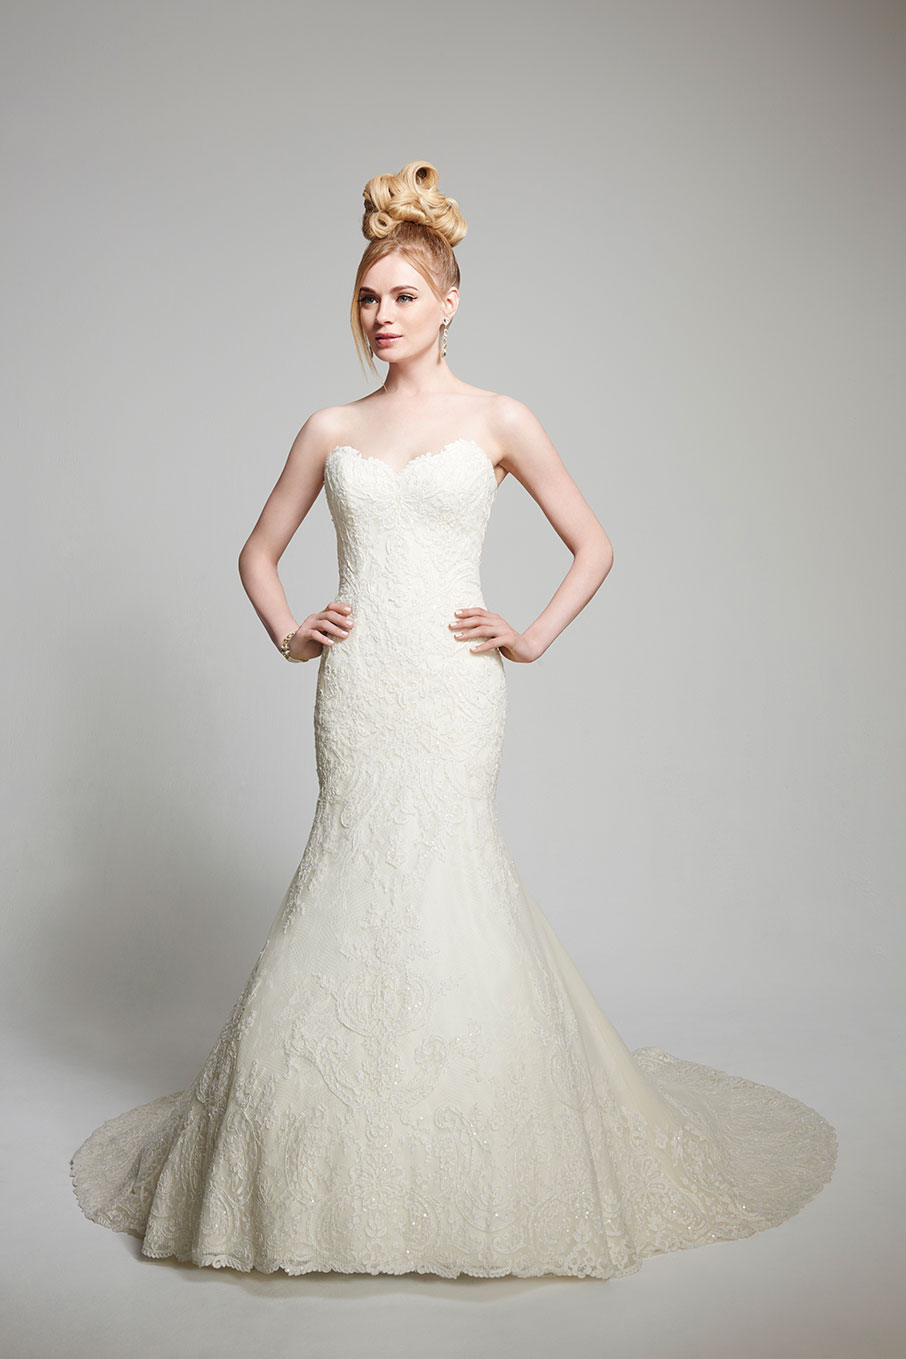 Mcisabel bridal gown by matthew christopher dallas texas for Matthew christopher wedding dress prices